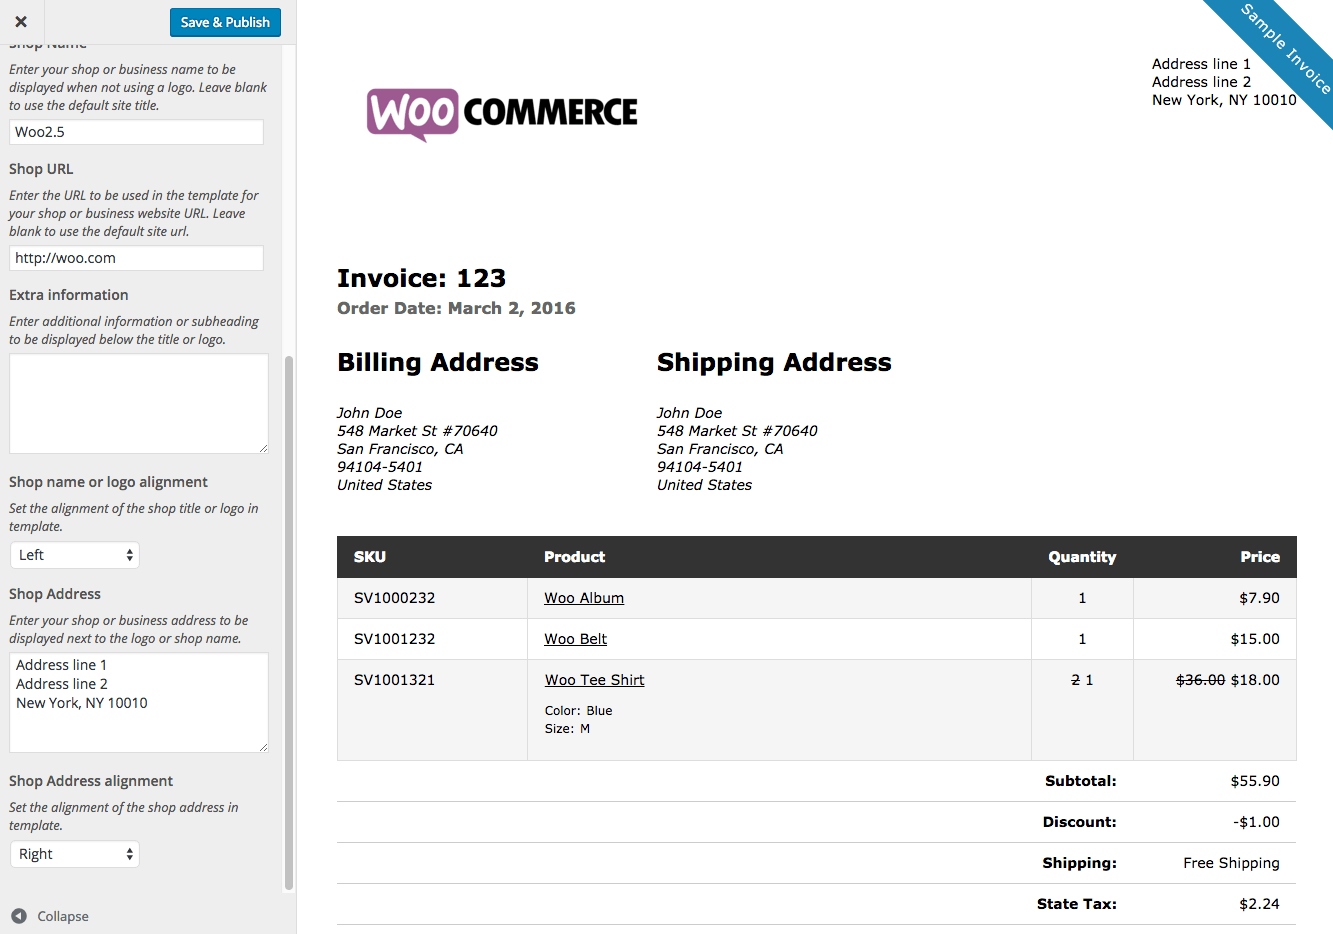 Reliefworkersus  Marvelous Woocommerce Print Invoices Amp Packing Lists  Woocommerce Docs With Lovable Woocommerce Print Invoices  Packing Lists Customizer With Easy On The Eye Web Invoice Template Also Proforma Invoice Template Download Free In Addition Labour Invoice Template And Vat On Invoice As Well As Matching Invoices Additionally Apple Invoice Software From Docswoocommercecom With Reliefworkersus  Lovable Woocommerce Print Invoices Amp Packing Lists  Woocommerce Docs With Easy On The Eye Woocommerce Print Invoices  Packing Lists Customizer And Marvelous Web Invoice Template Also Proforma Invoice Template Download Free In Addition Labour Invoice Template From Docswoocommercecom